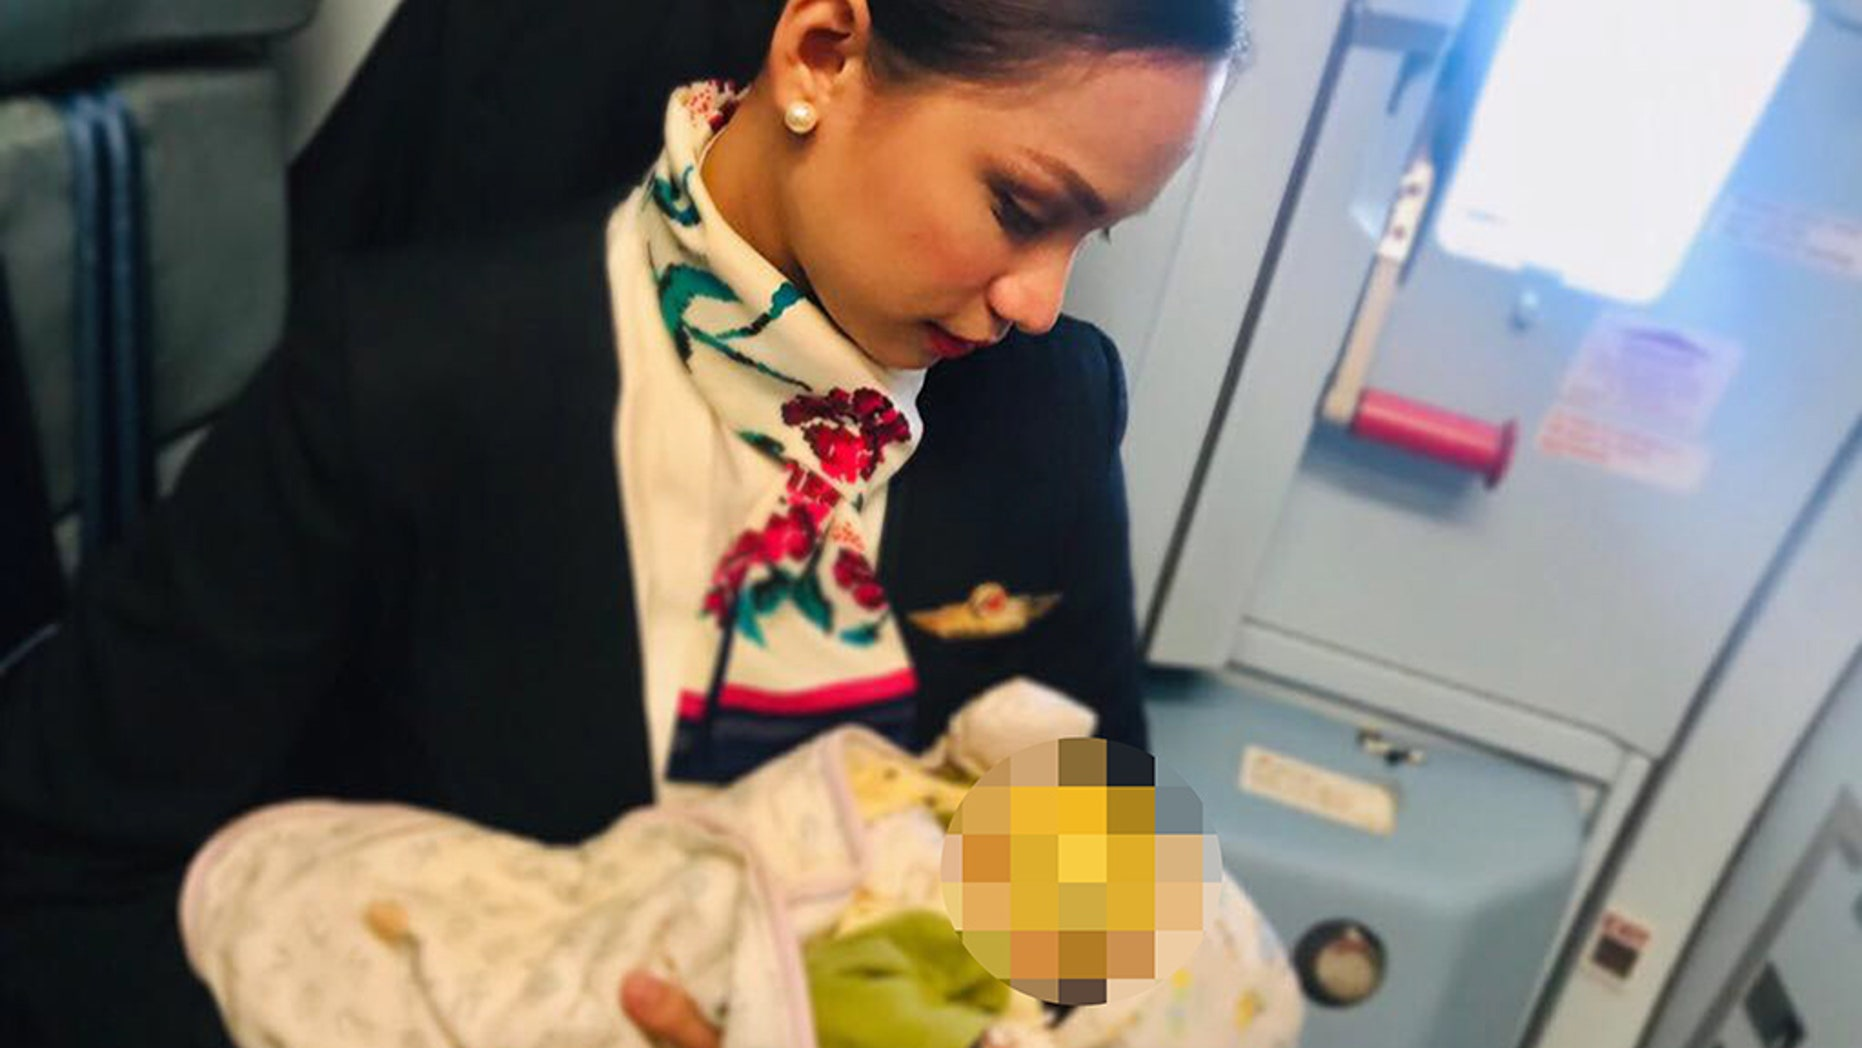 Philippines Airline flight attendant breastfed stranger's hungry baby mid-flight